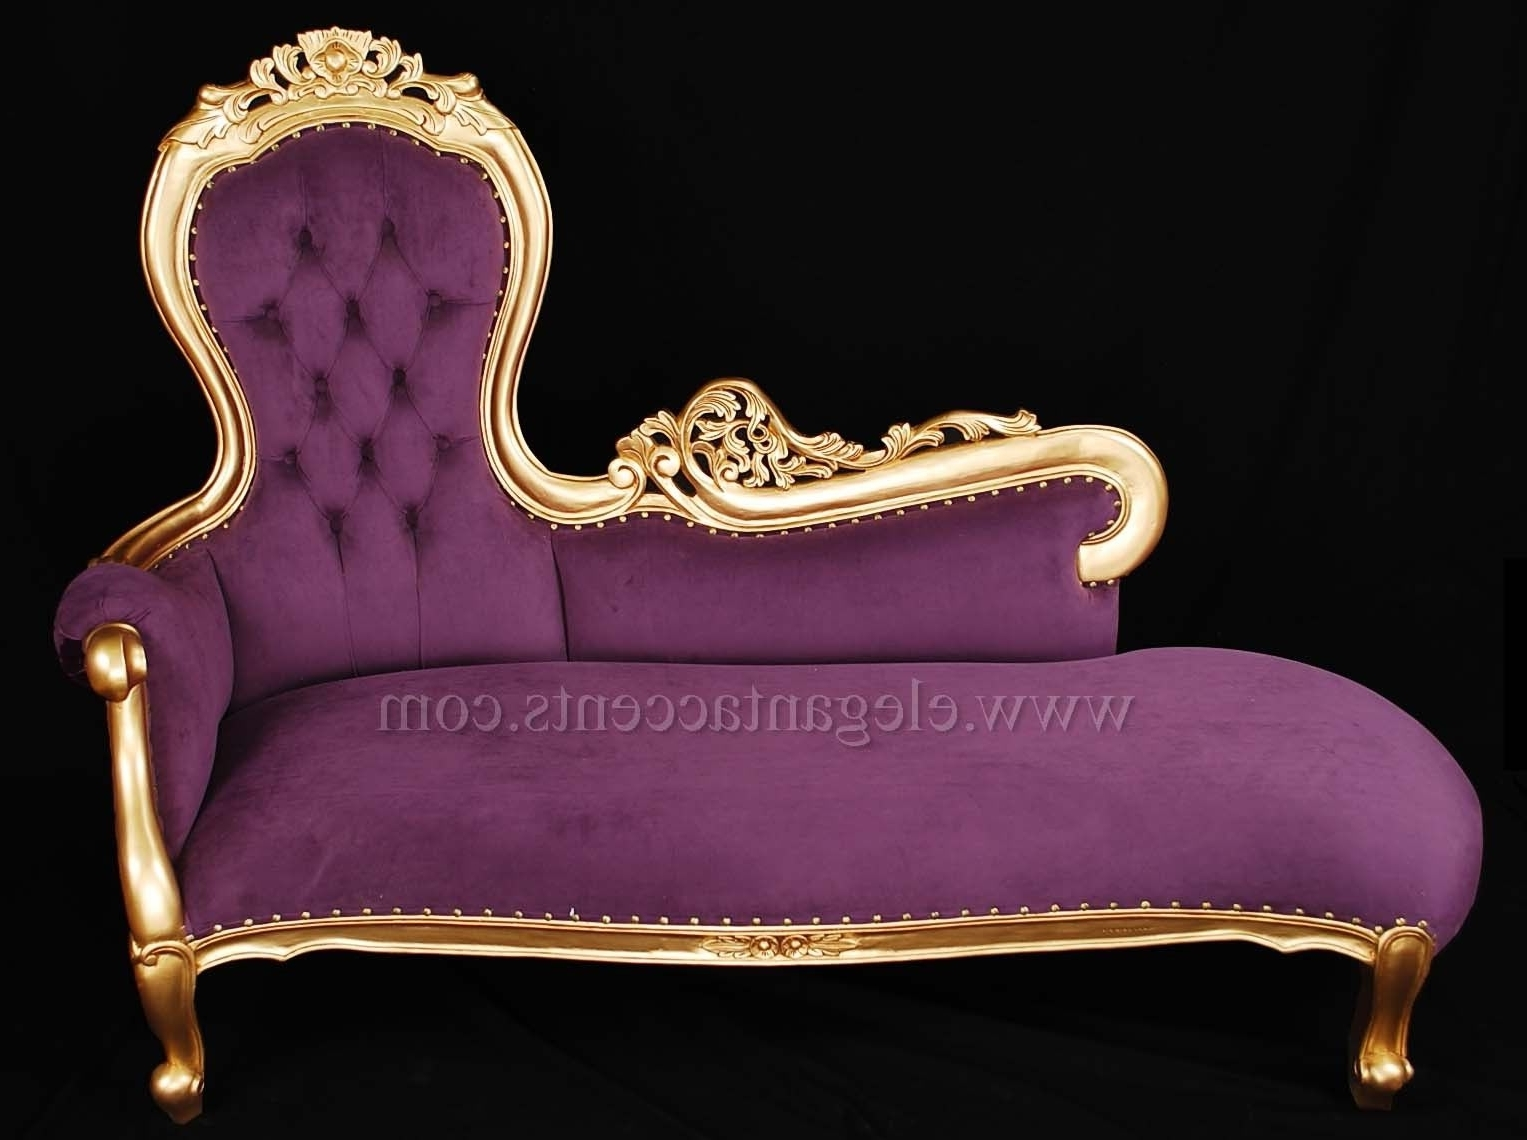 French Rose Sofa Chaise Lounge – Gold Finish With Purple Fabric Within Well Liked Purple Chaises (View 8 of 15)